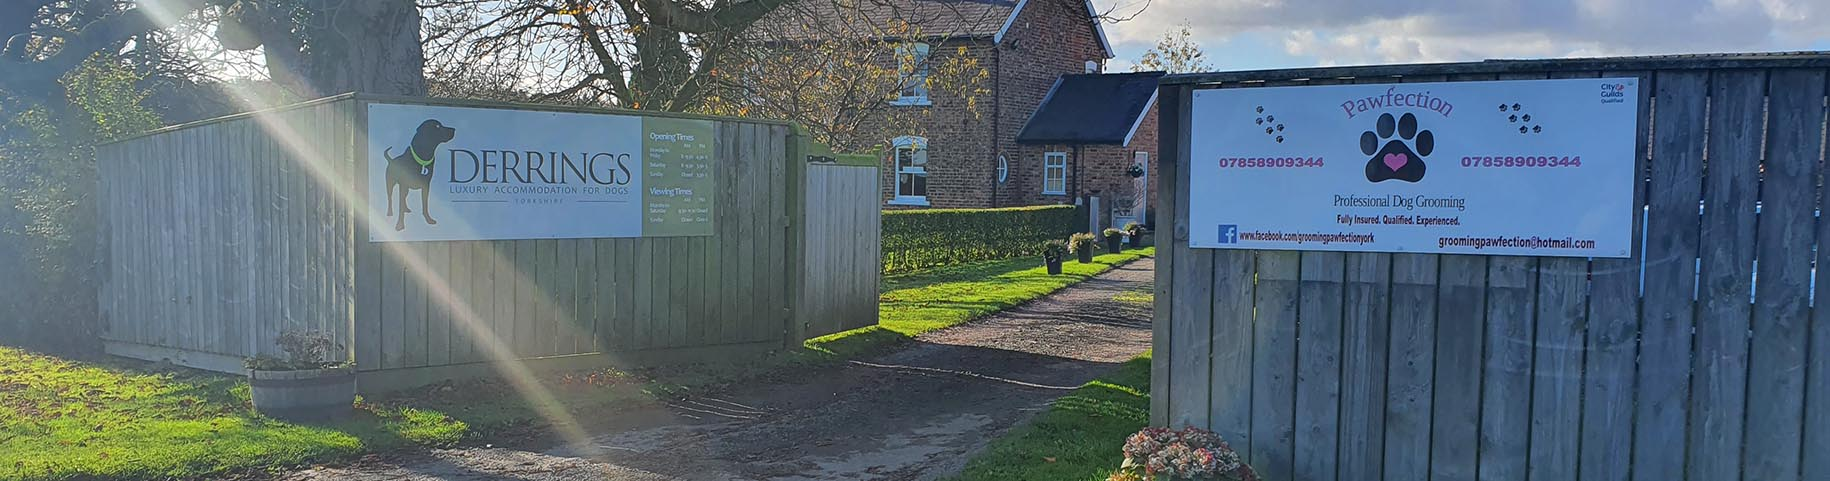 Derrings Boarding Kennels, nr Harrogate, North Yorkshire